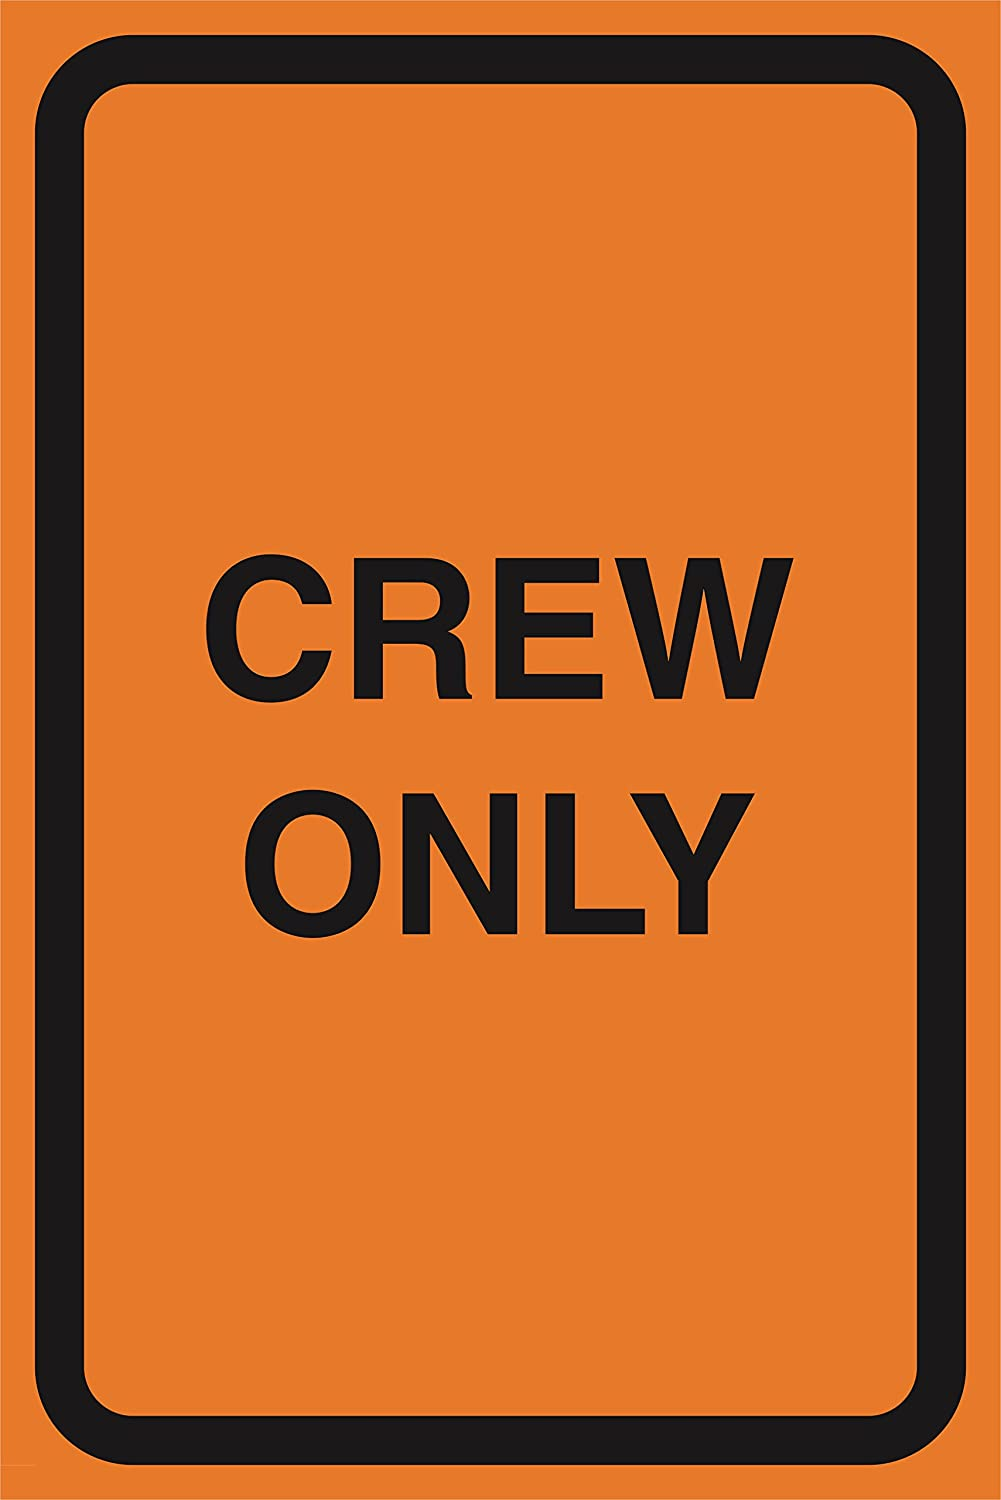 Crew Only Orange Construction Area Working Notice Lot Zone Safety Street Road Warning Business Signs Commercial Plastic Sign